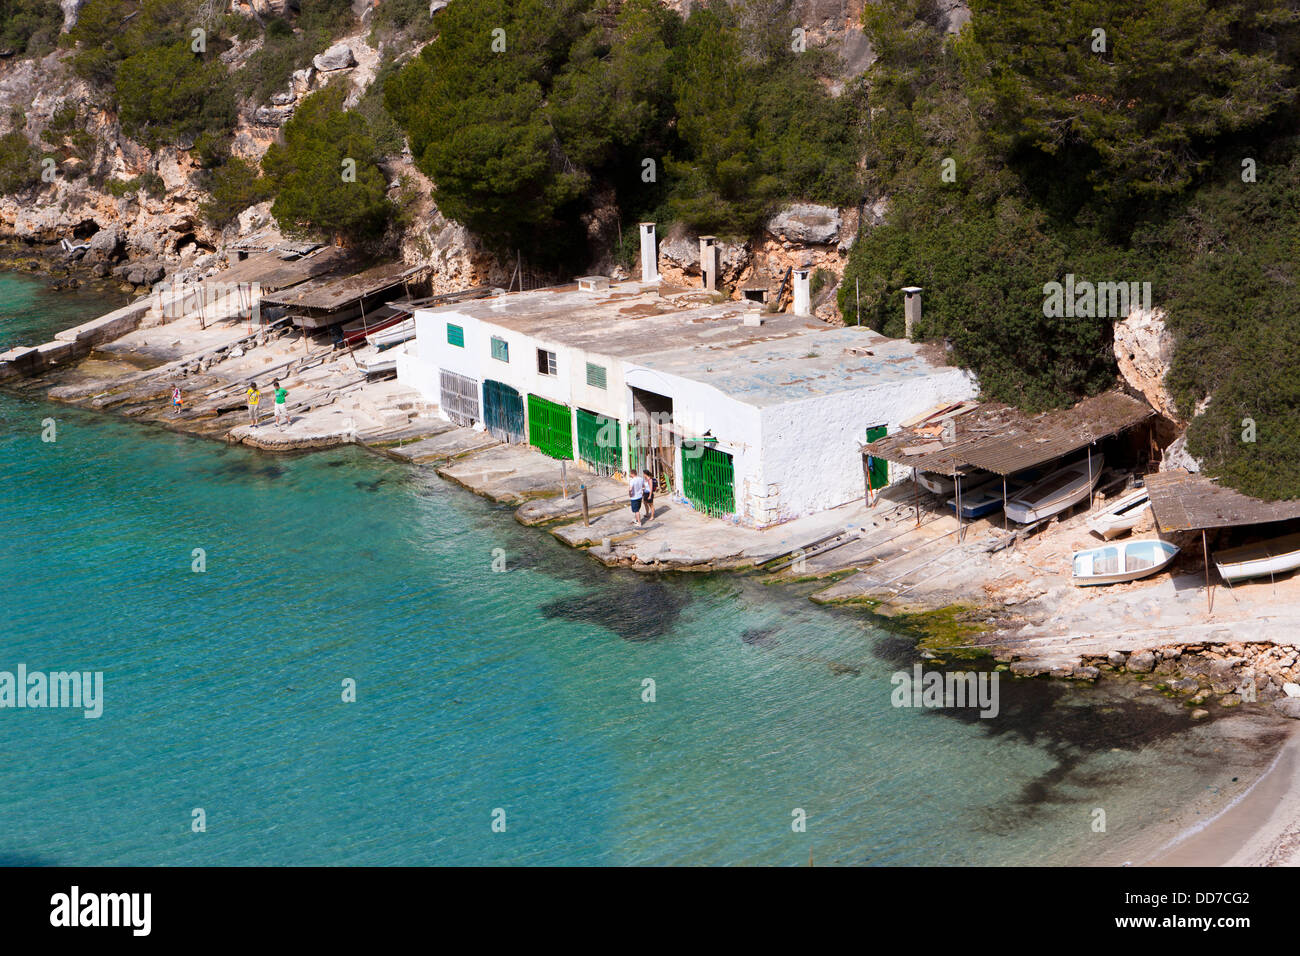 Spain, Majorca, House boat in the bay of Cala Pi Llucmajor - Stock Image